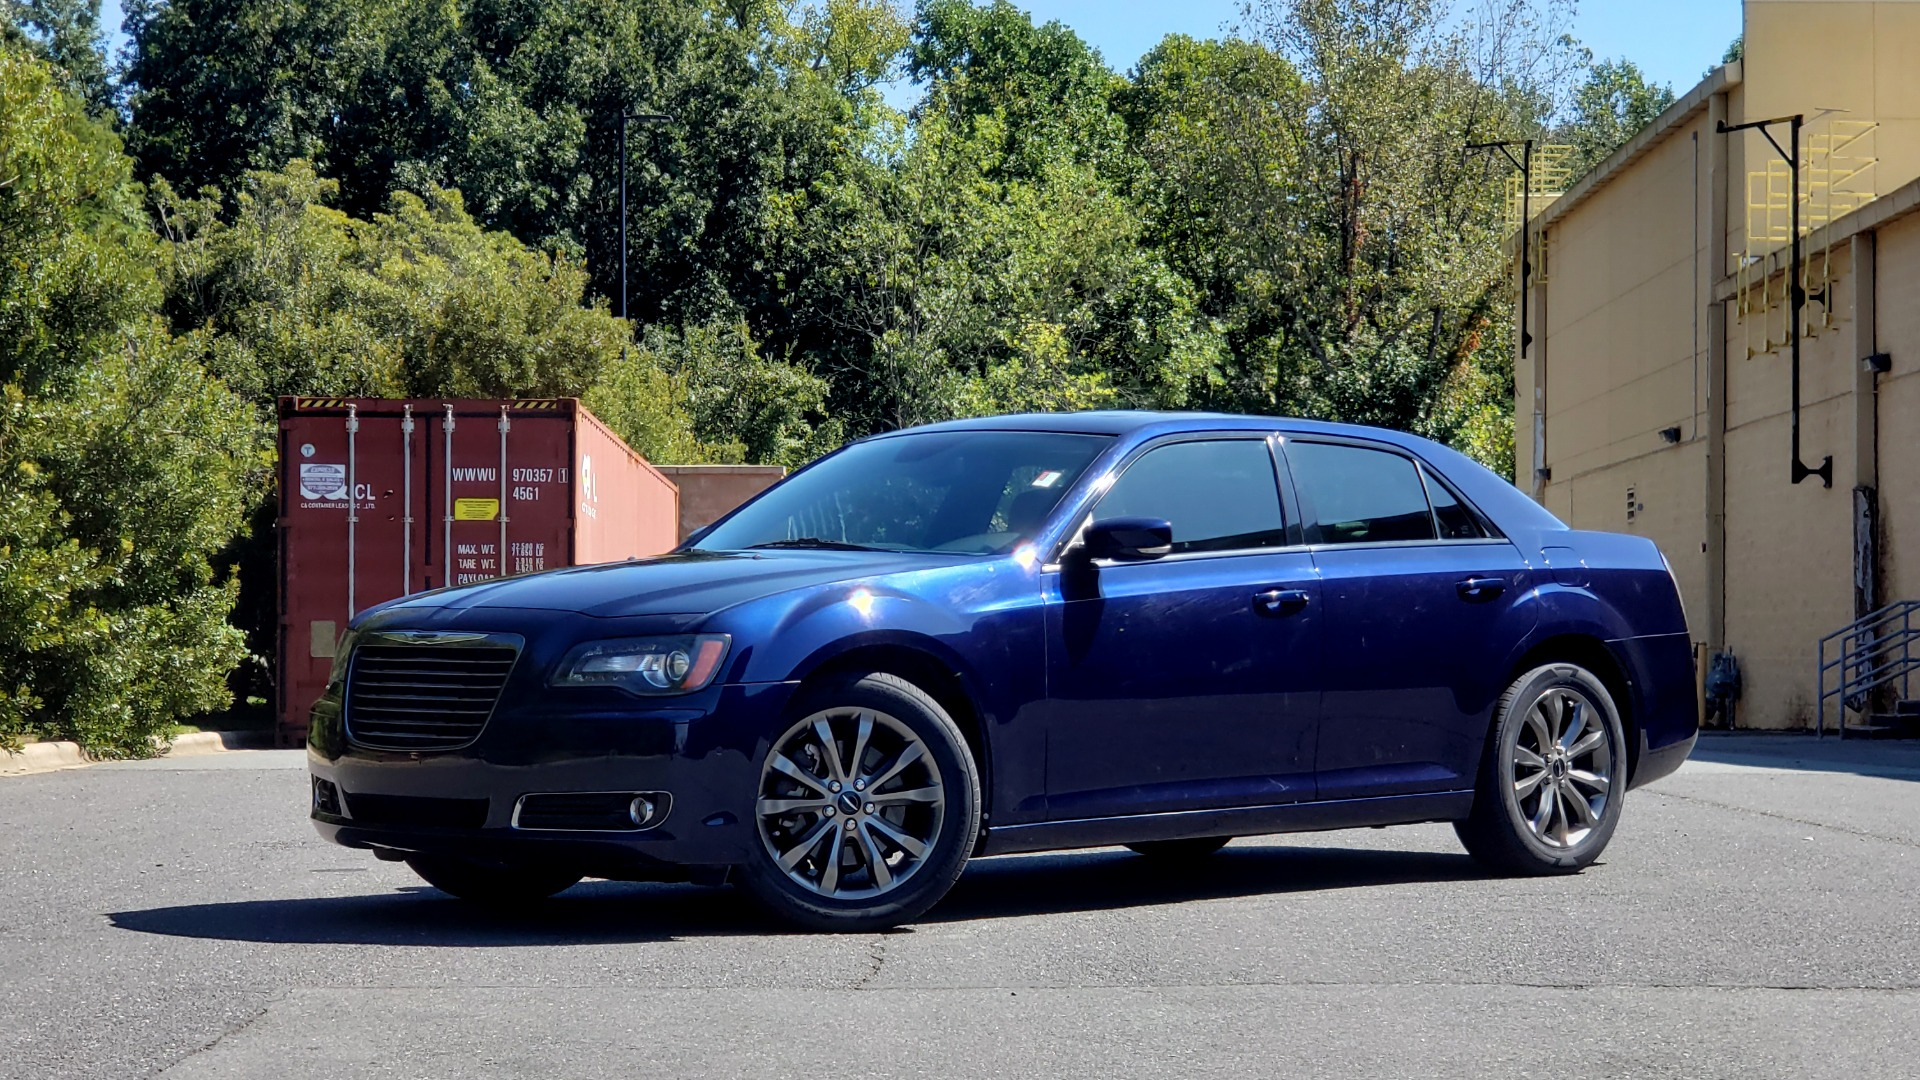 Used 2014 Chrysler 300 S AWD / SAFETY TEC / BLIND SPOT / LIGHT GRP / LUXURY GRP for sale $13,995 at Formula Imports in Charlotte NC 28227 1